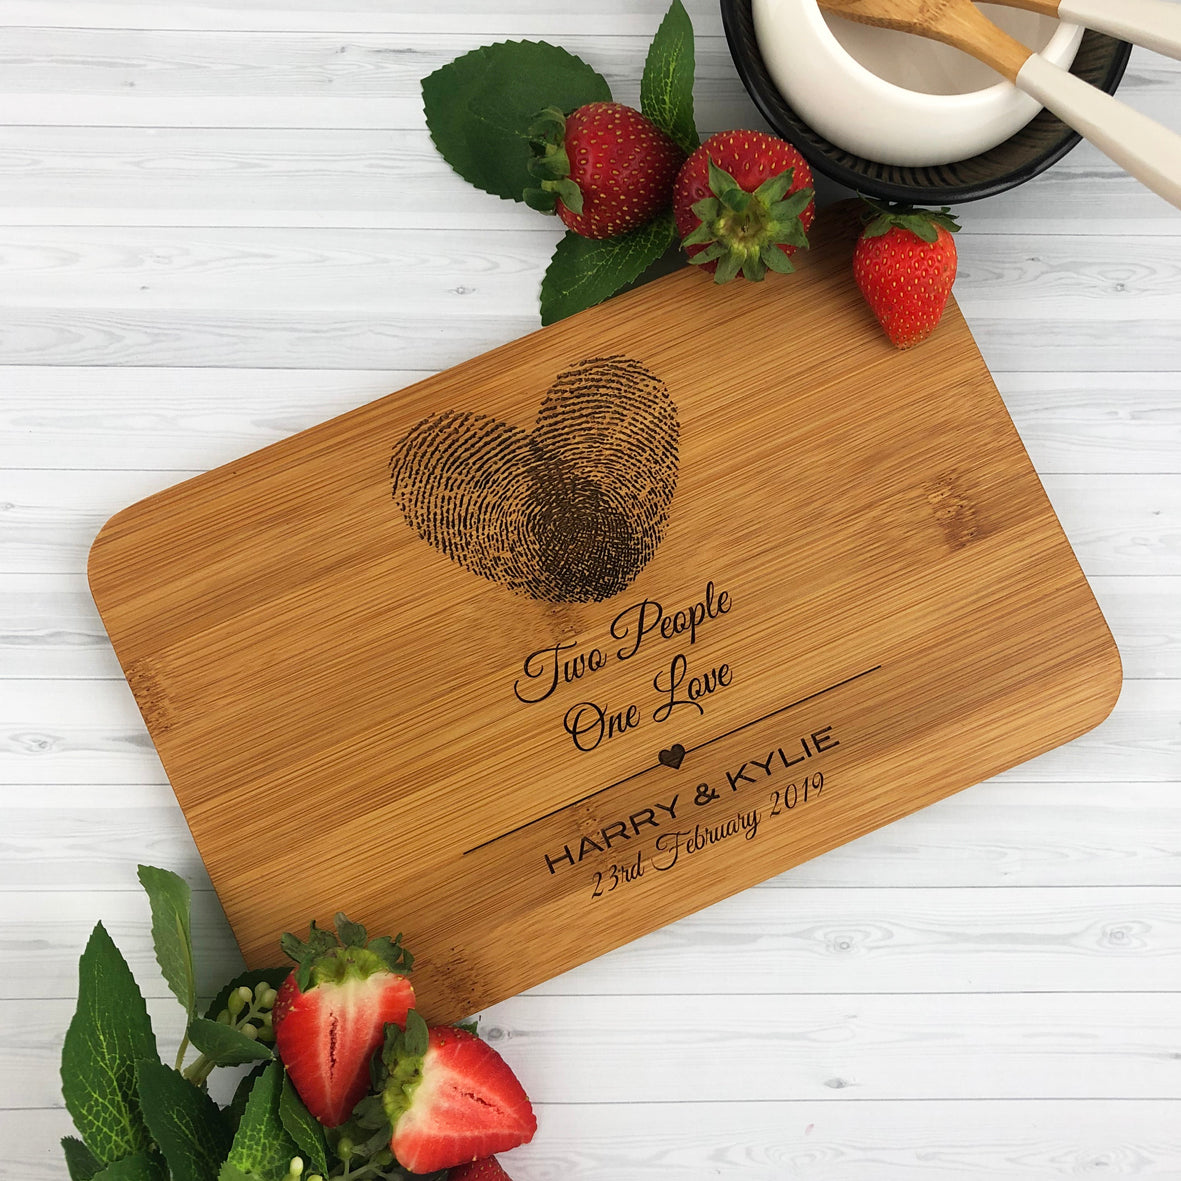 Two People One Love Bamboo Serving Board